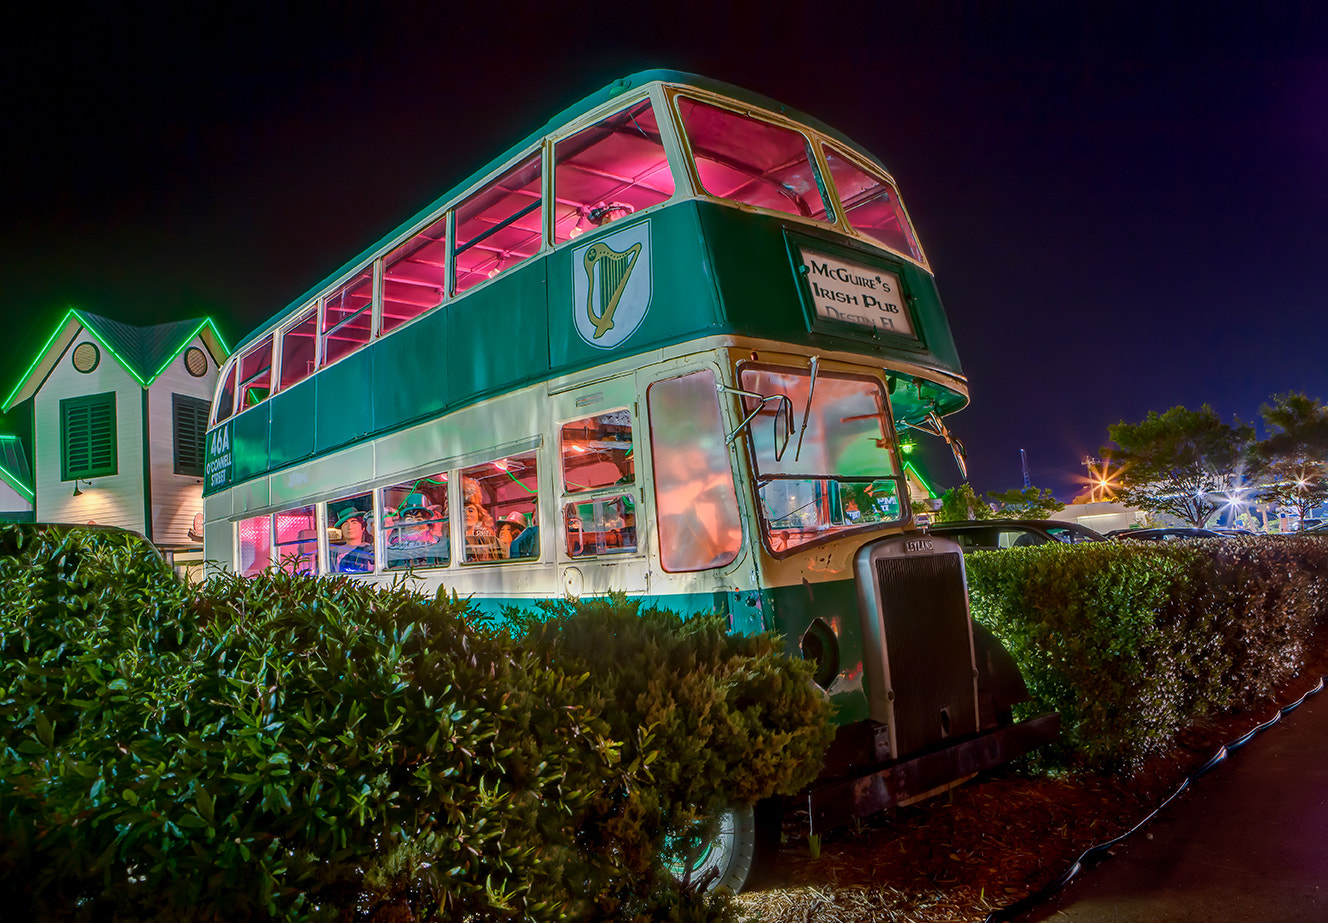 Photograph McGuire's Irish Pub Bus by Ellen Yeates on 500px